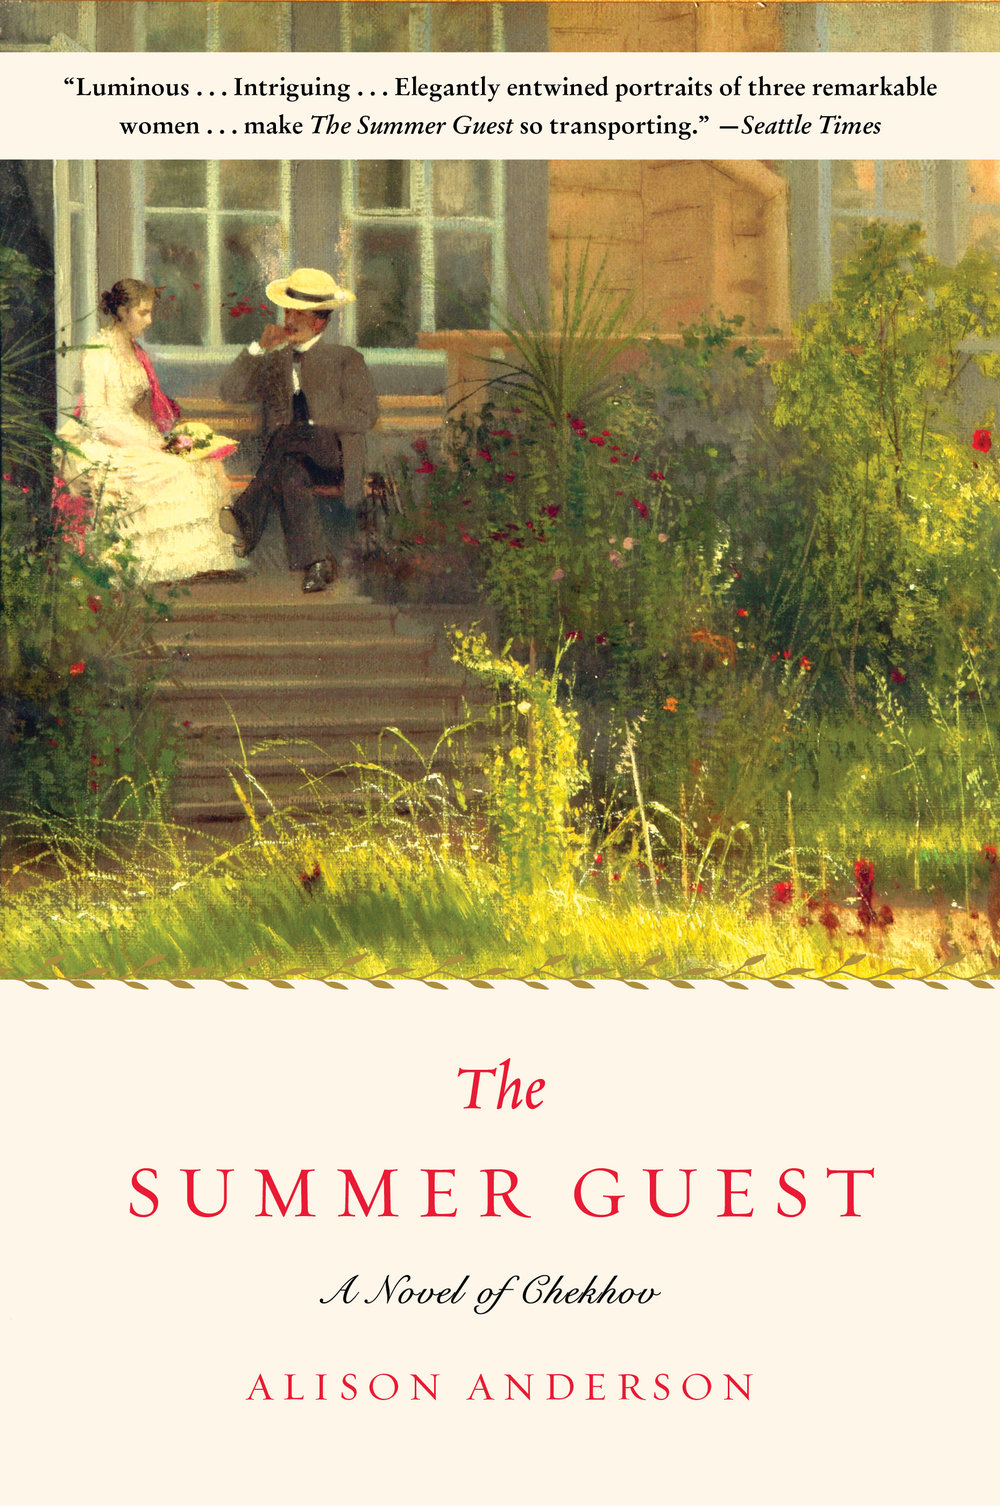 SummerGuest-comps9.jpg